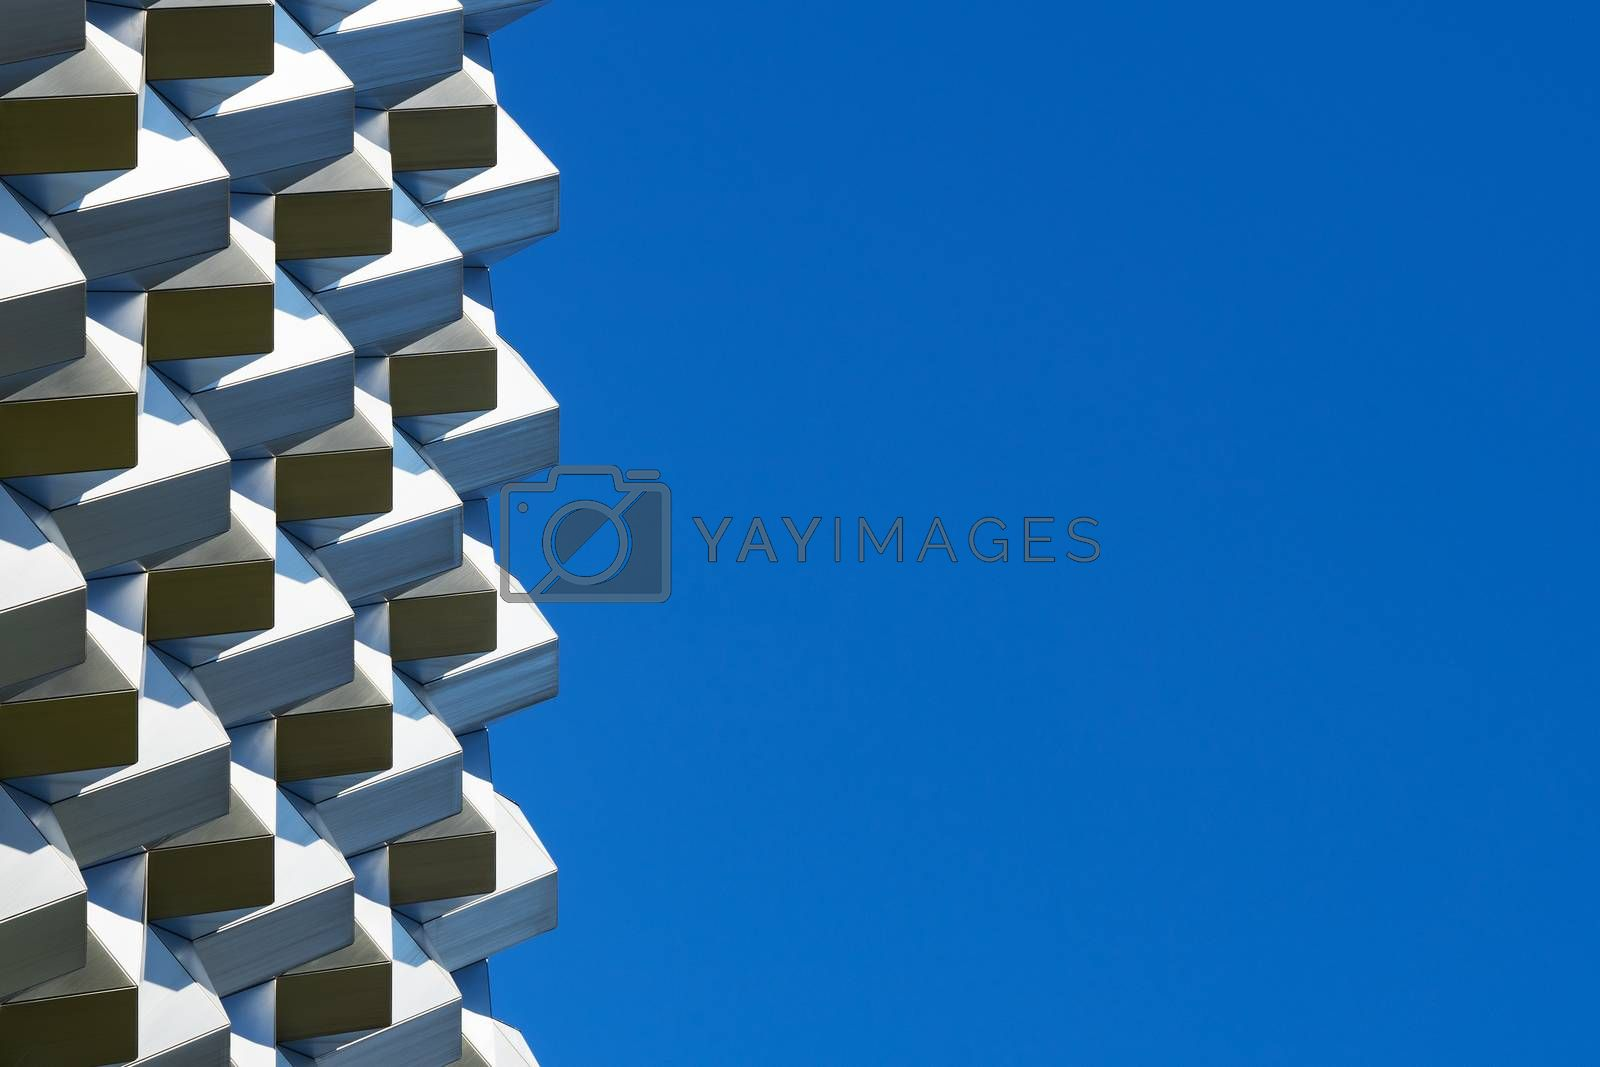 Roof structure seen against the clear blue sky on a sunny day.